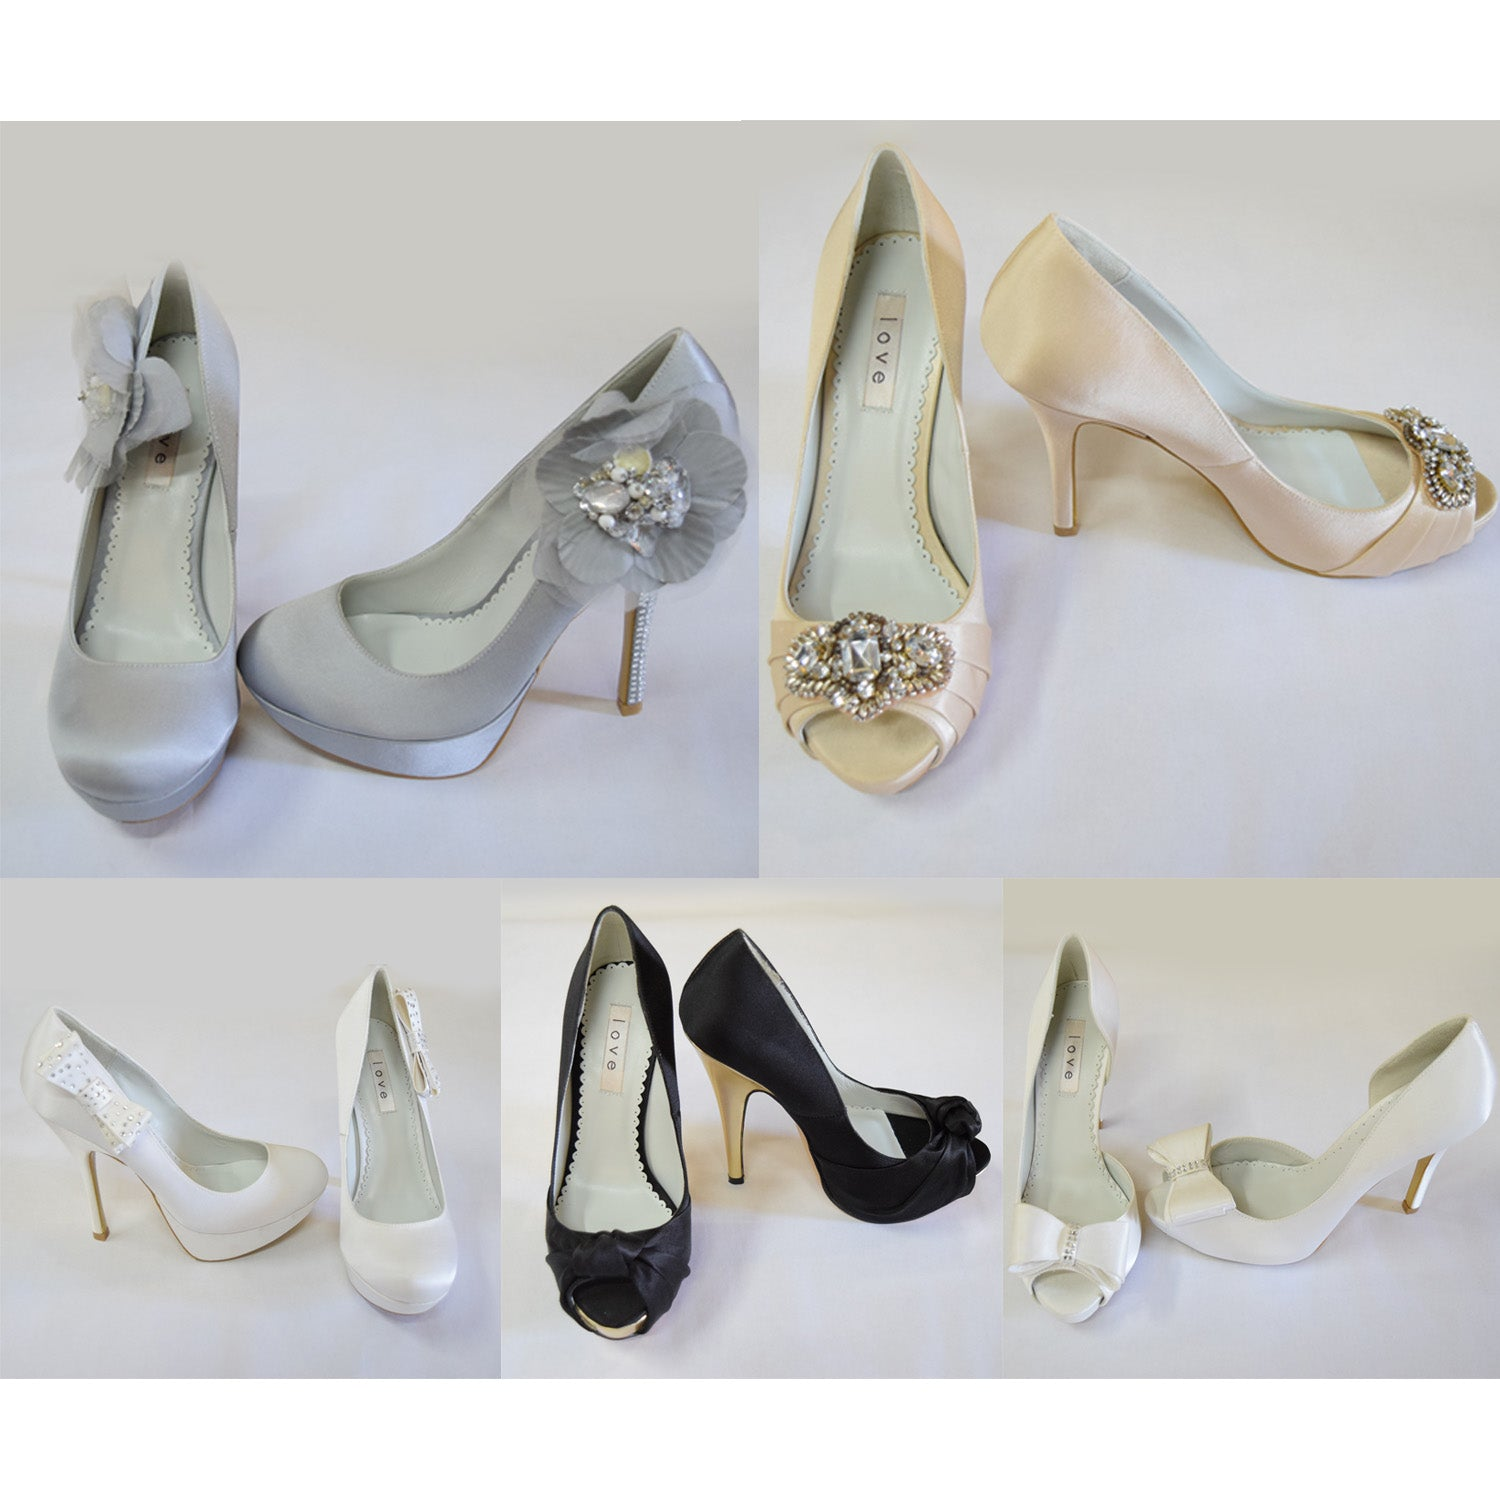 Enzoani Bridal/Party High Heels - 55 pc Lot